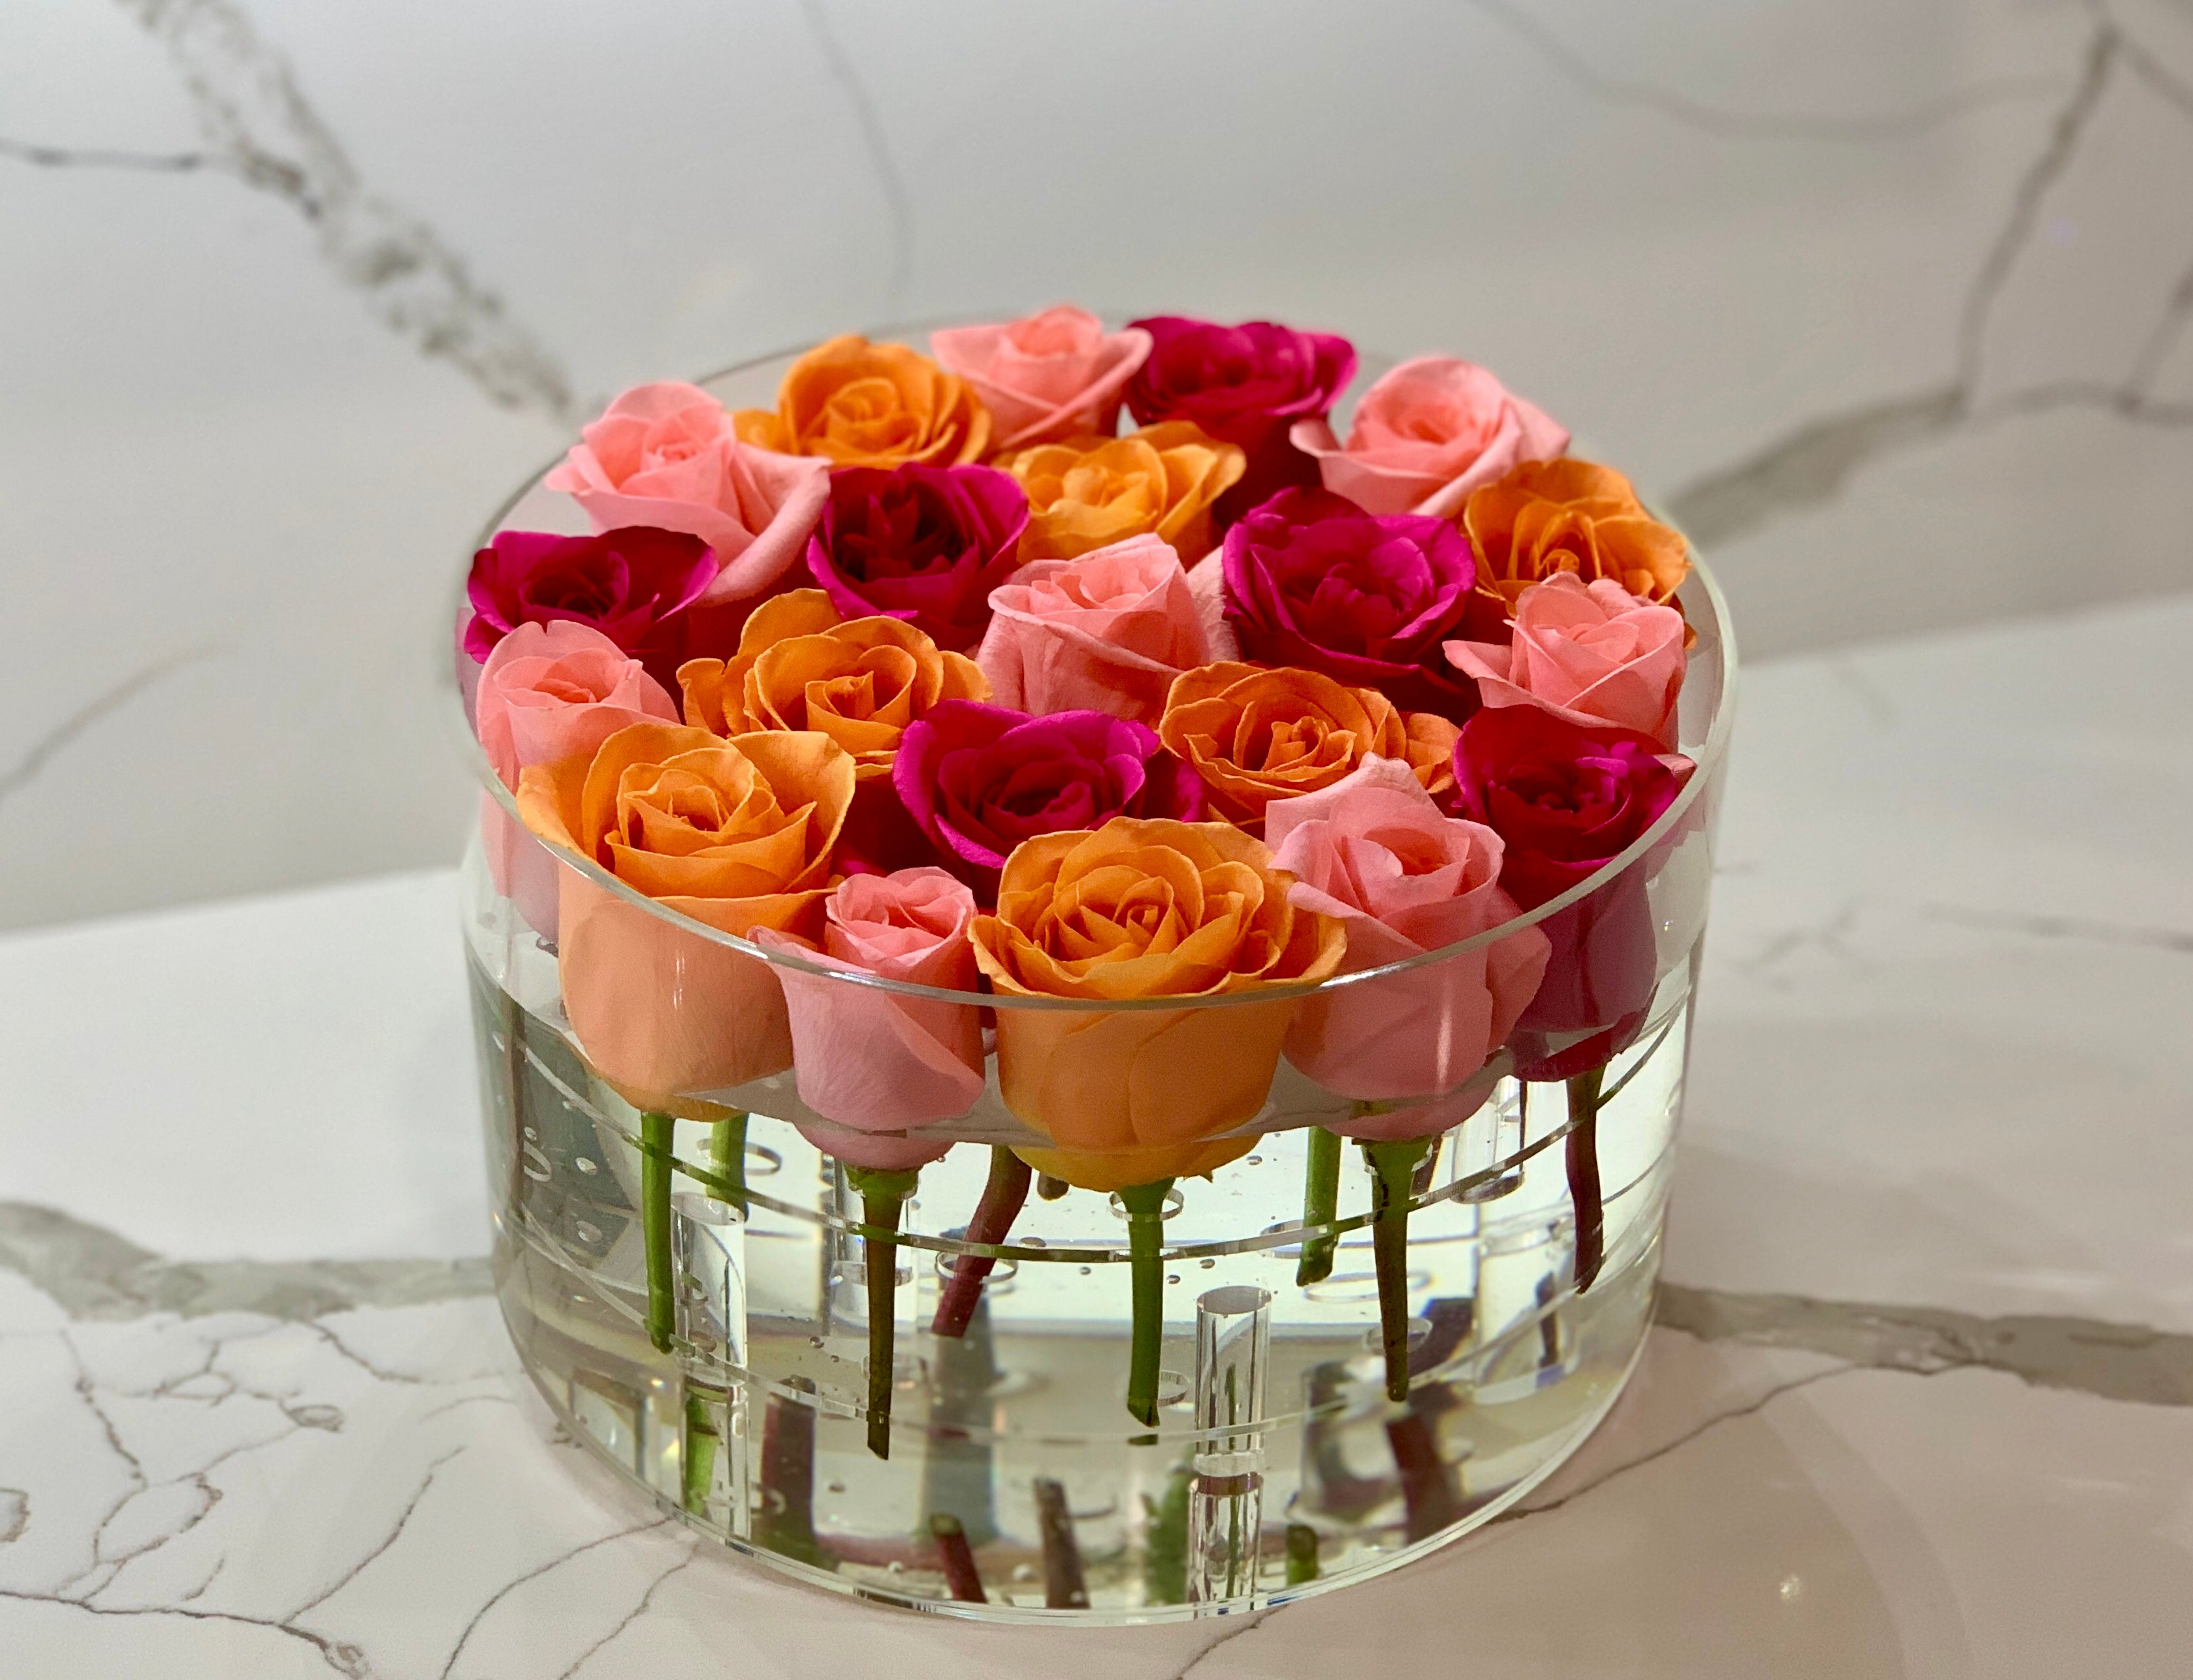 Modern Rose Box with Preserved long last lasting roses that last for years in Hot pink Roses, orange roses and Pink Roses